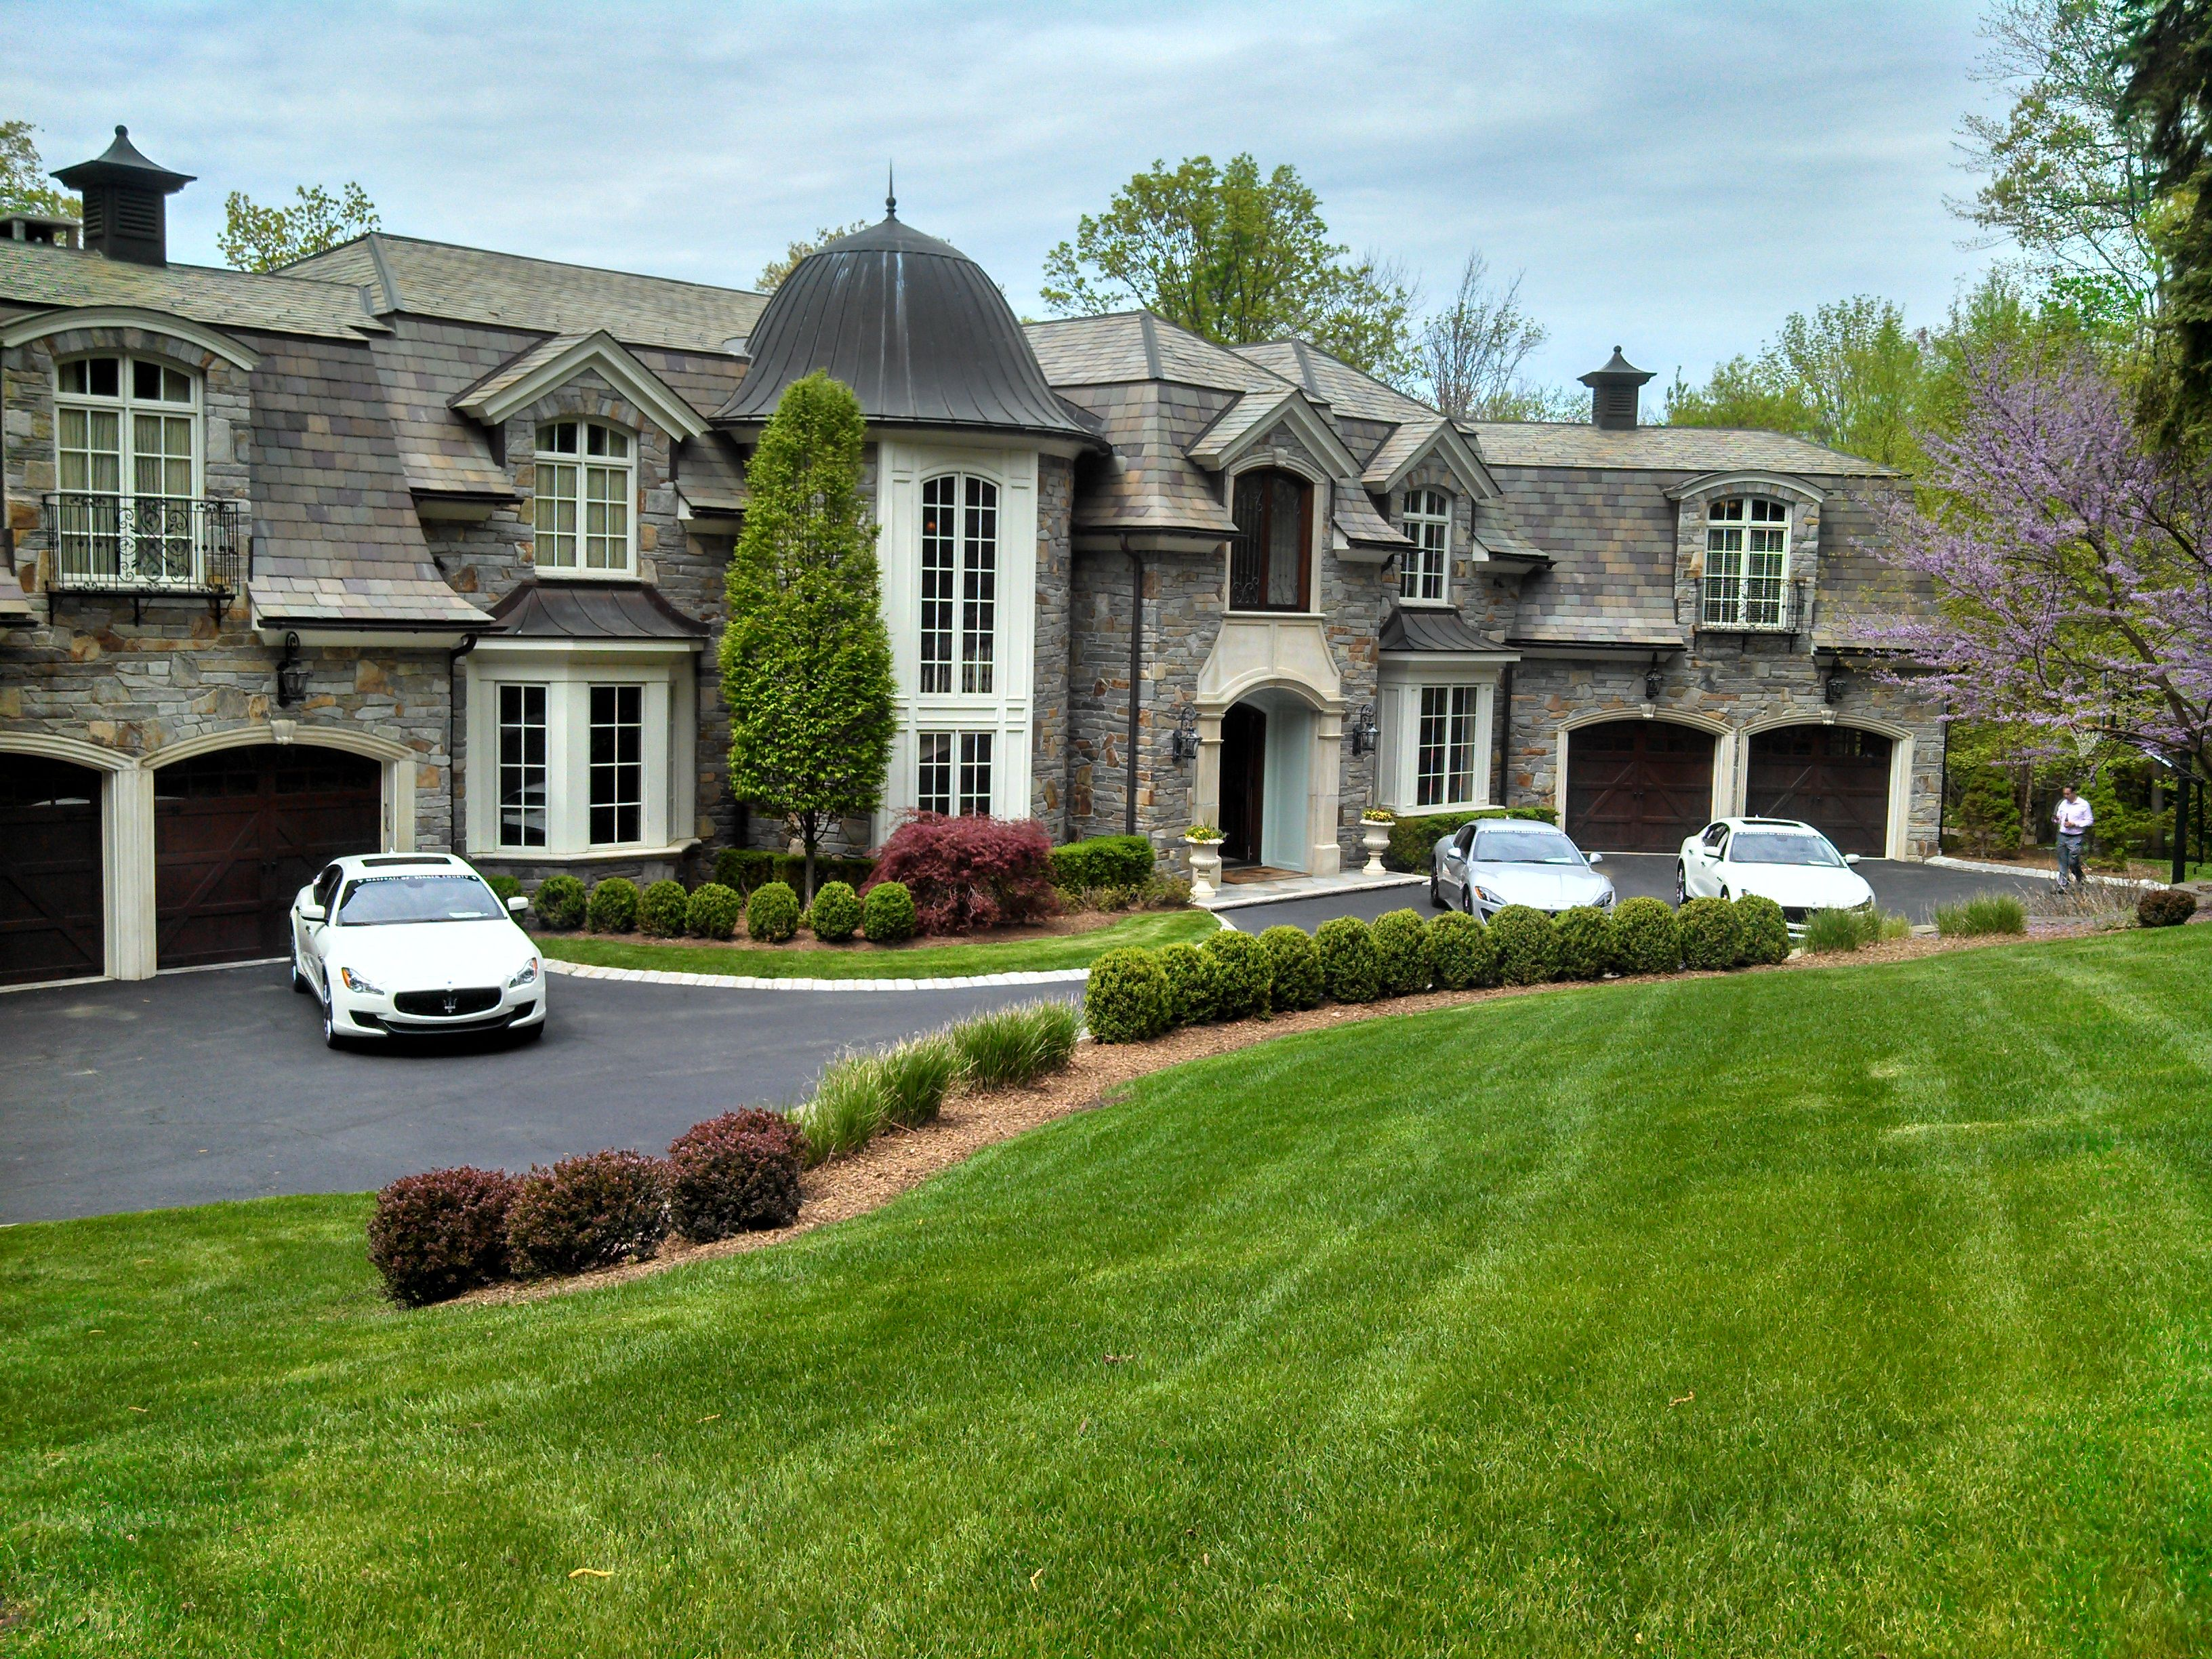 Saddle river nj google search french chateaus for Nj house builders